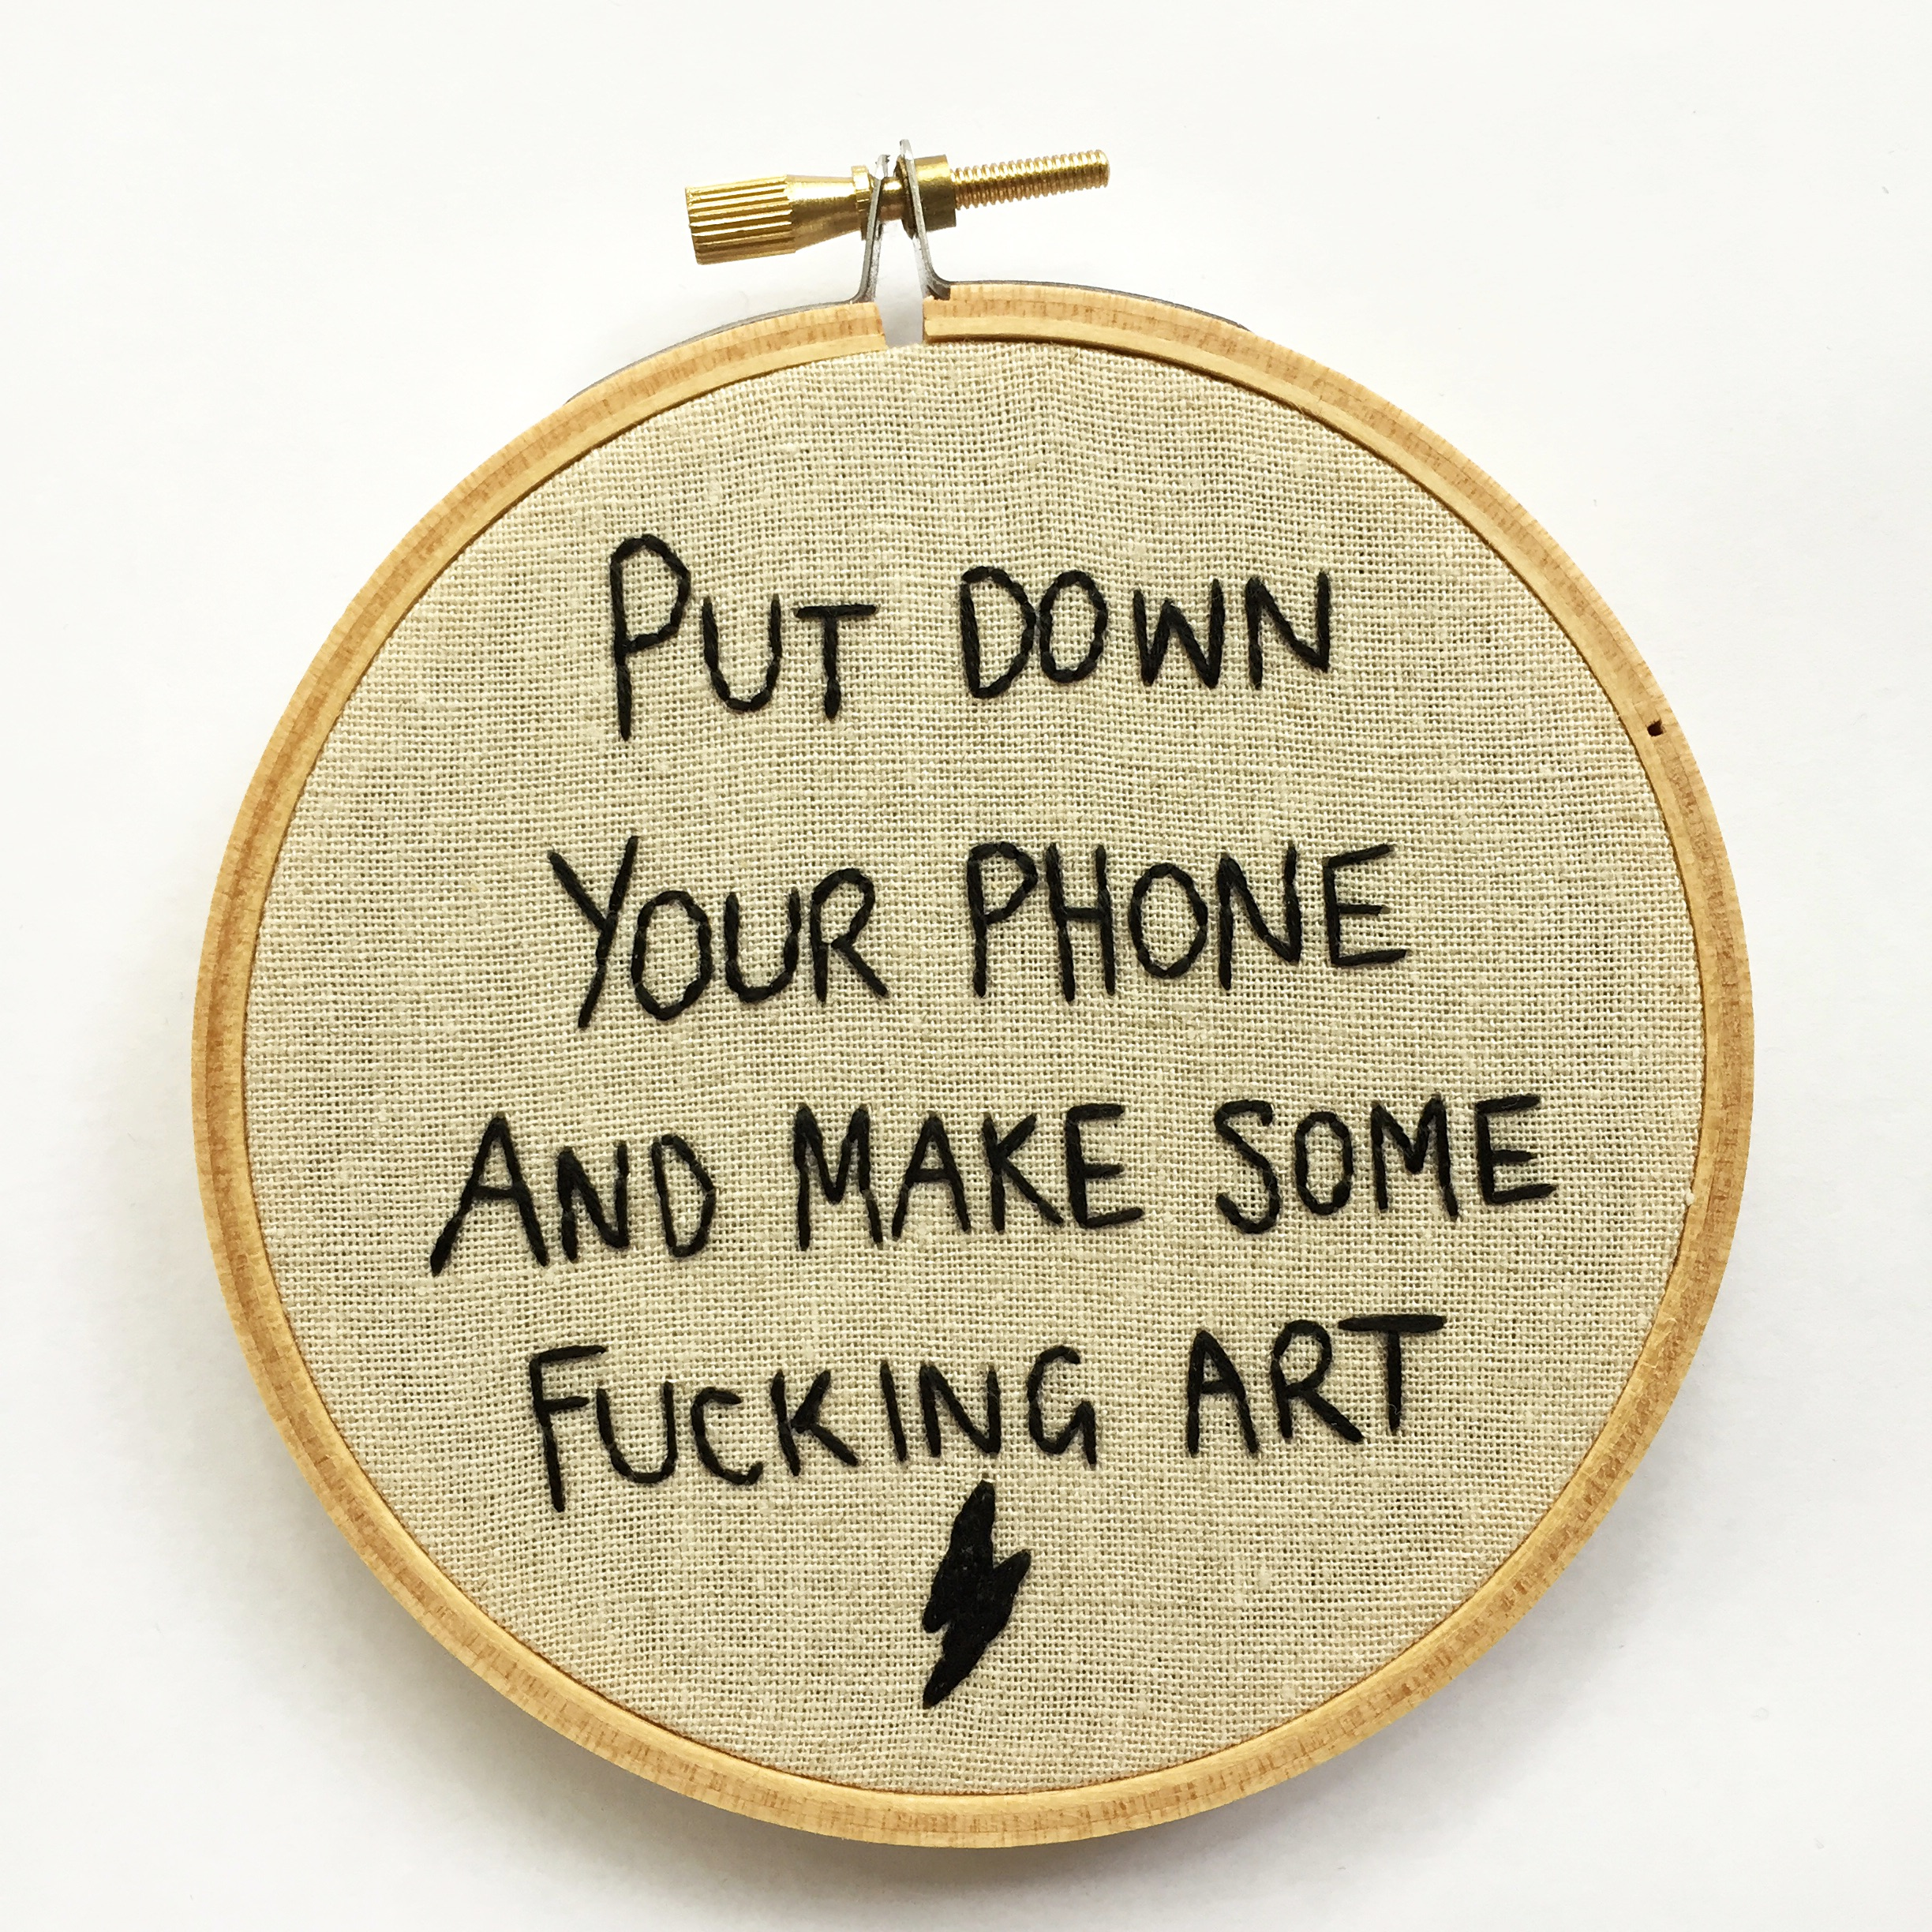 Put down your phone and make some fucking art